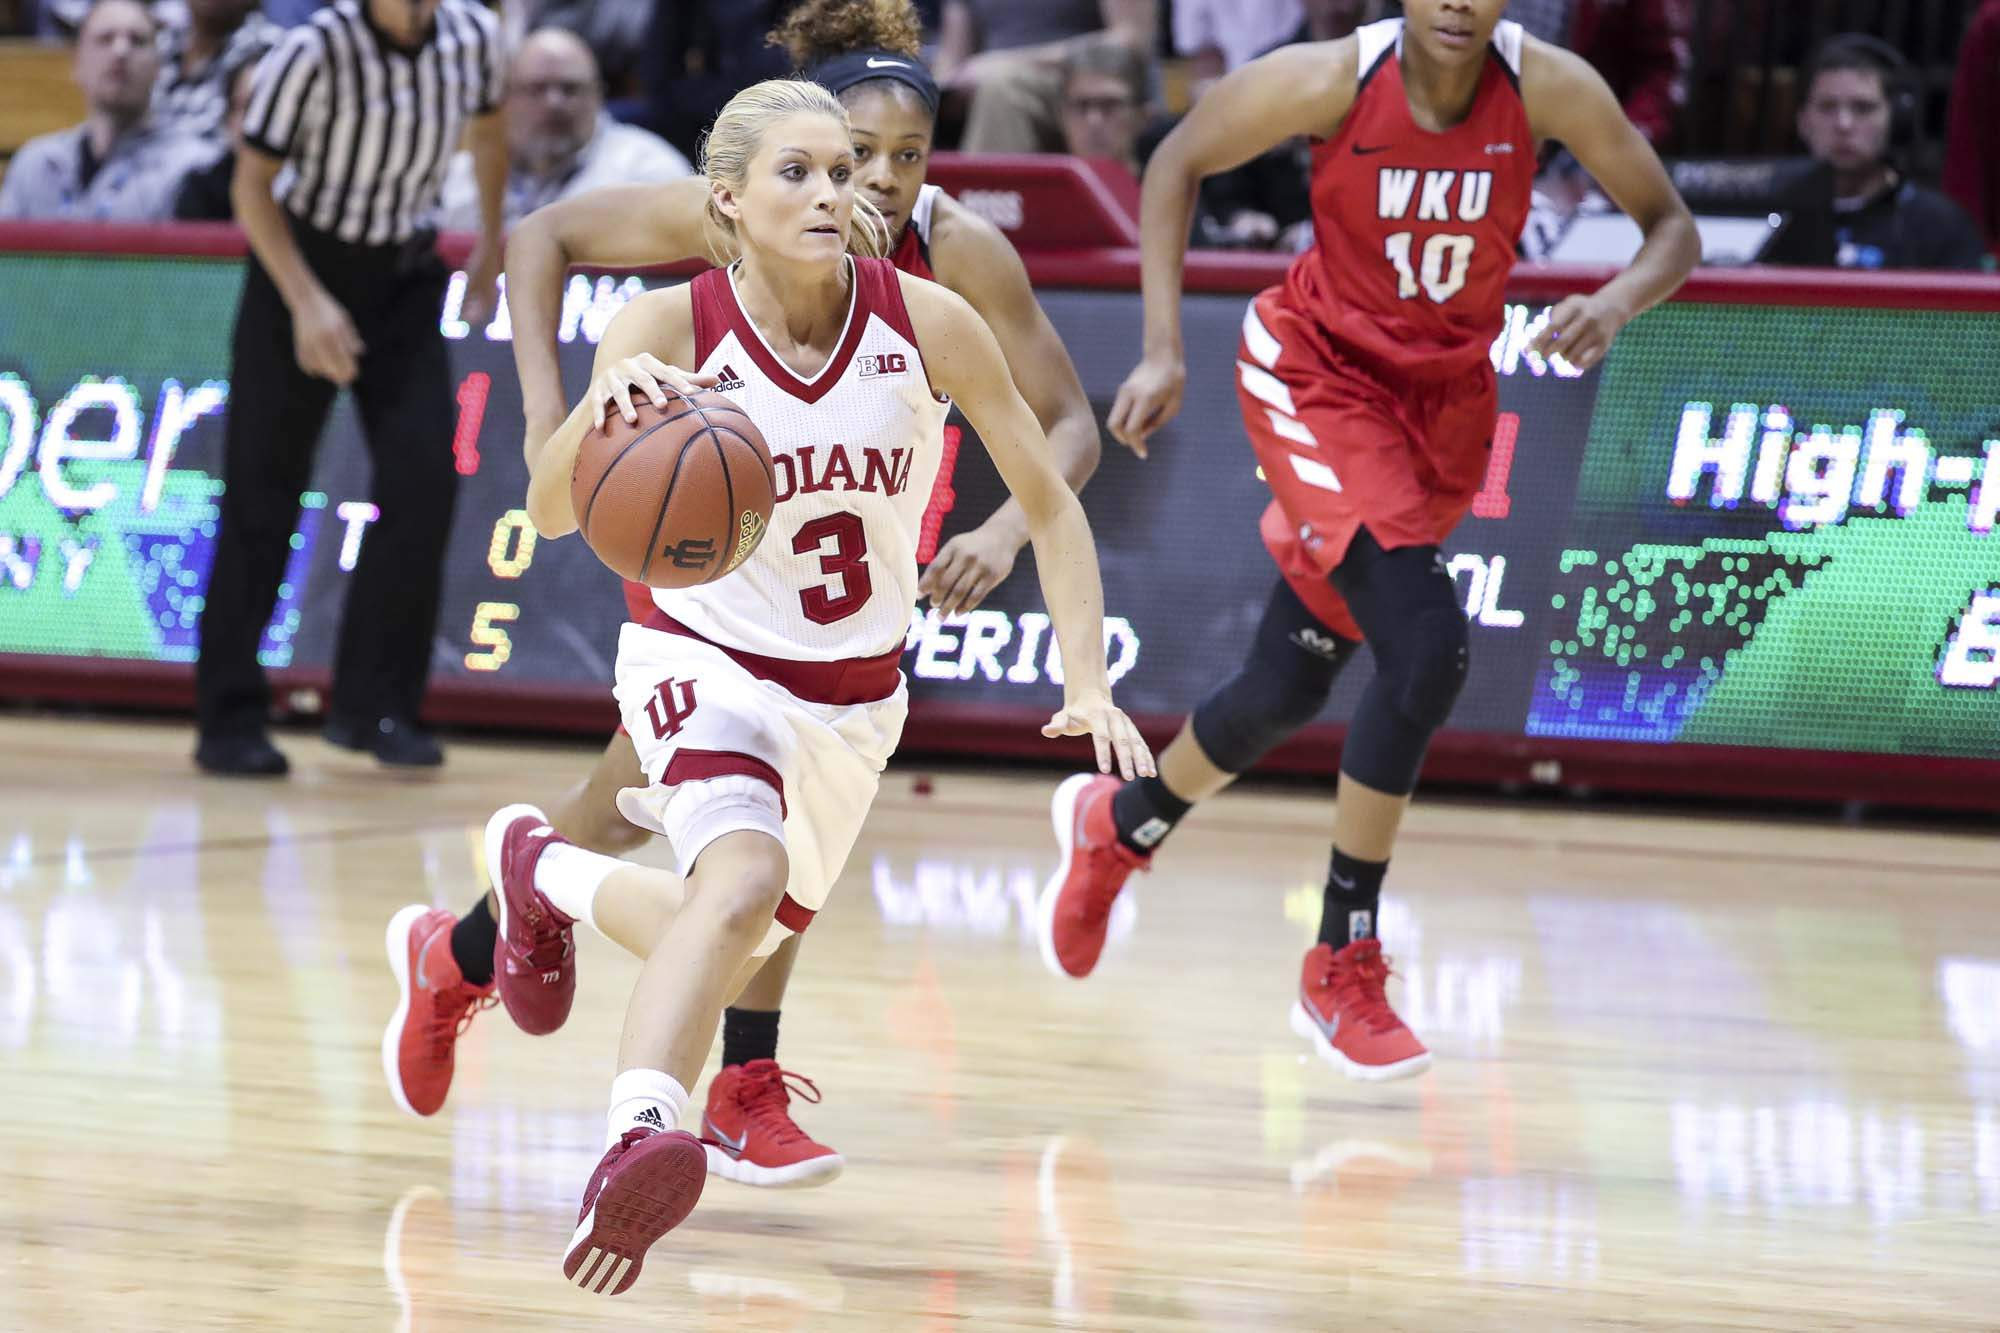 Mt. Carmel native Tyra Buss scored 27 points Wednesday night, breaking the IU All-Time Scoring Record. Buss now has 1,931 points